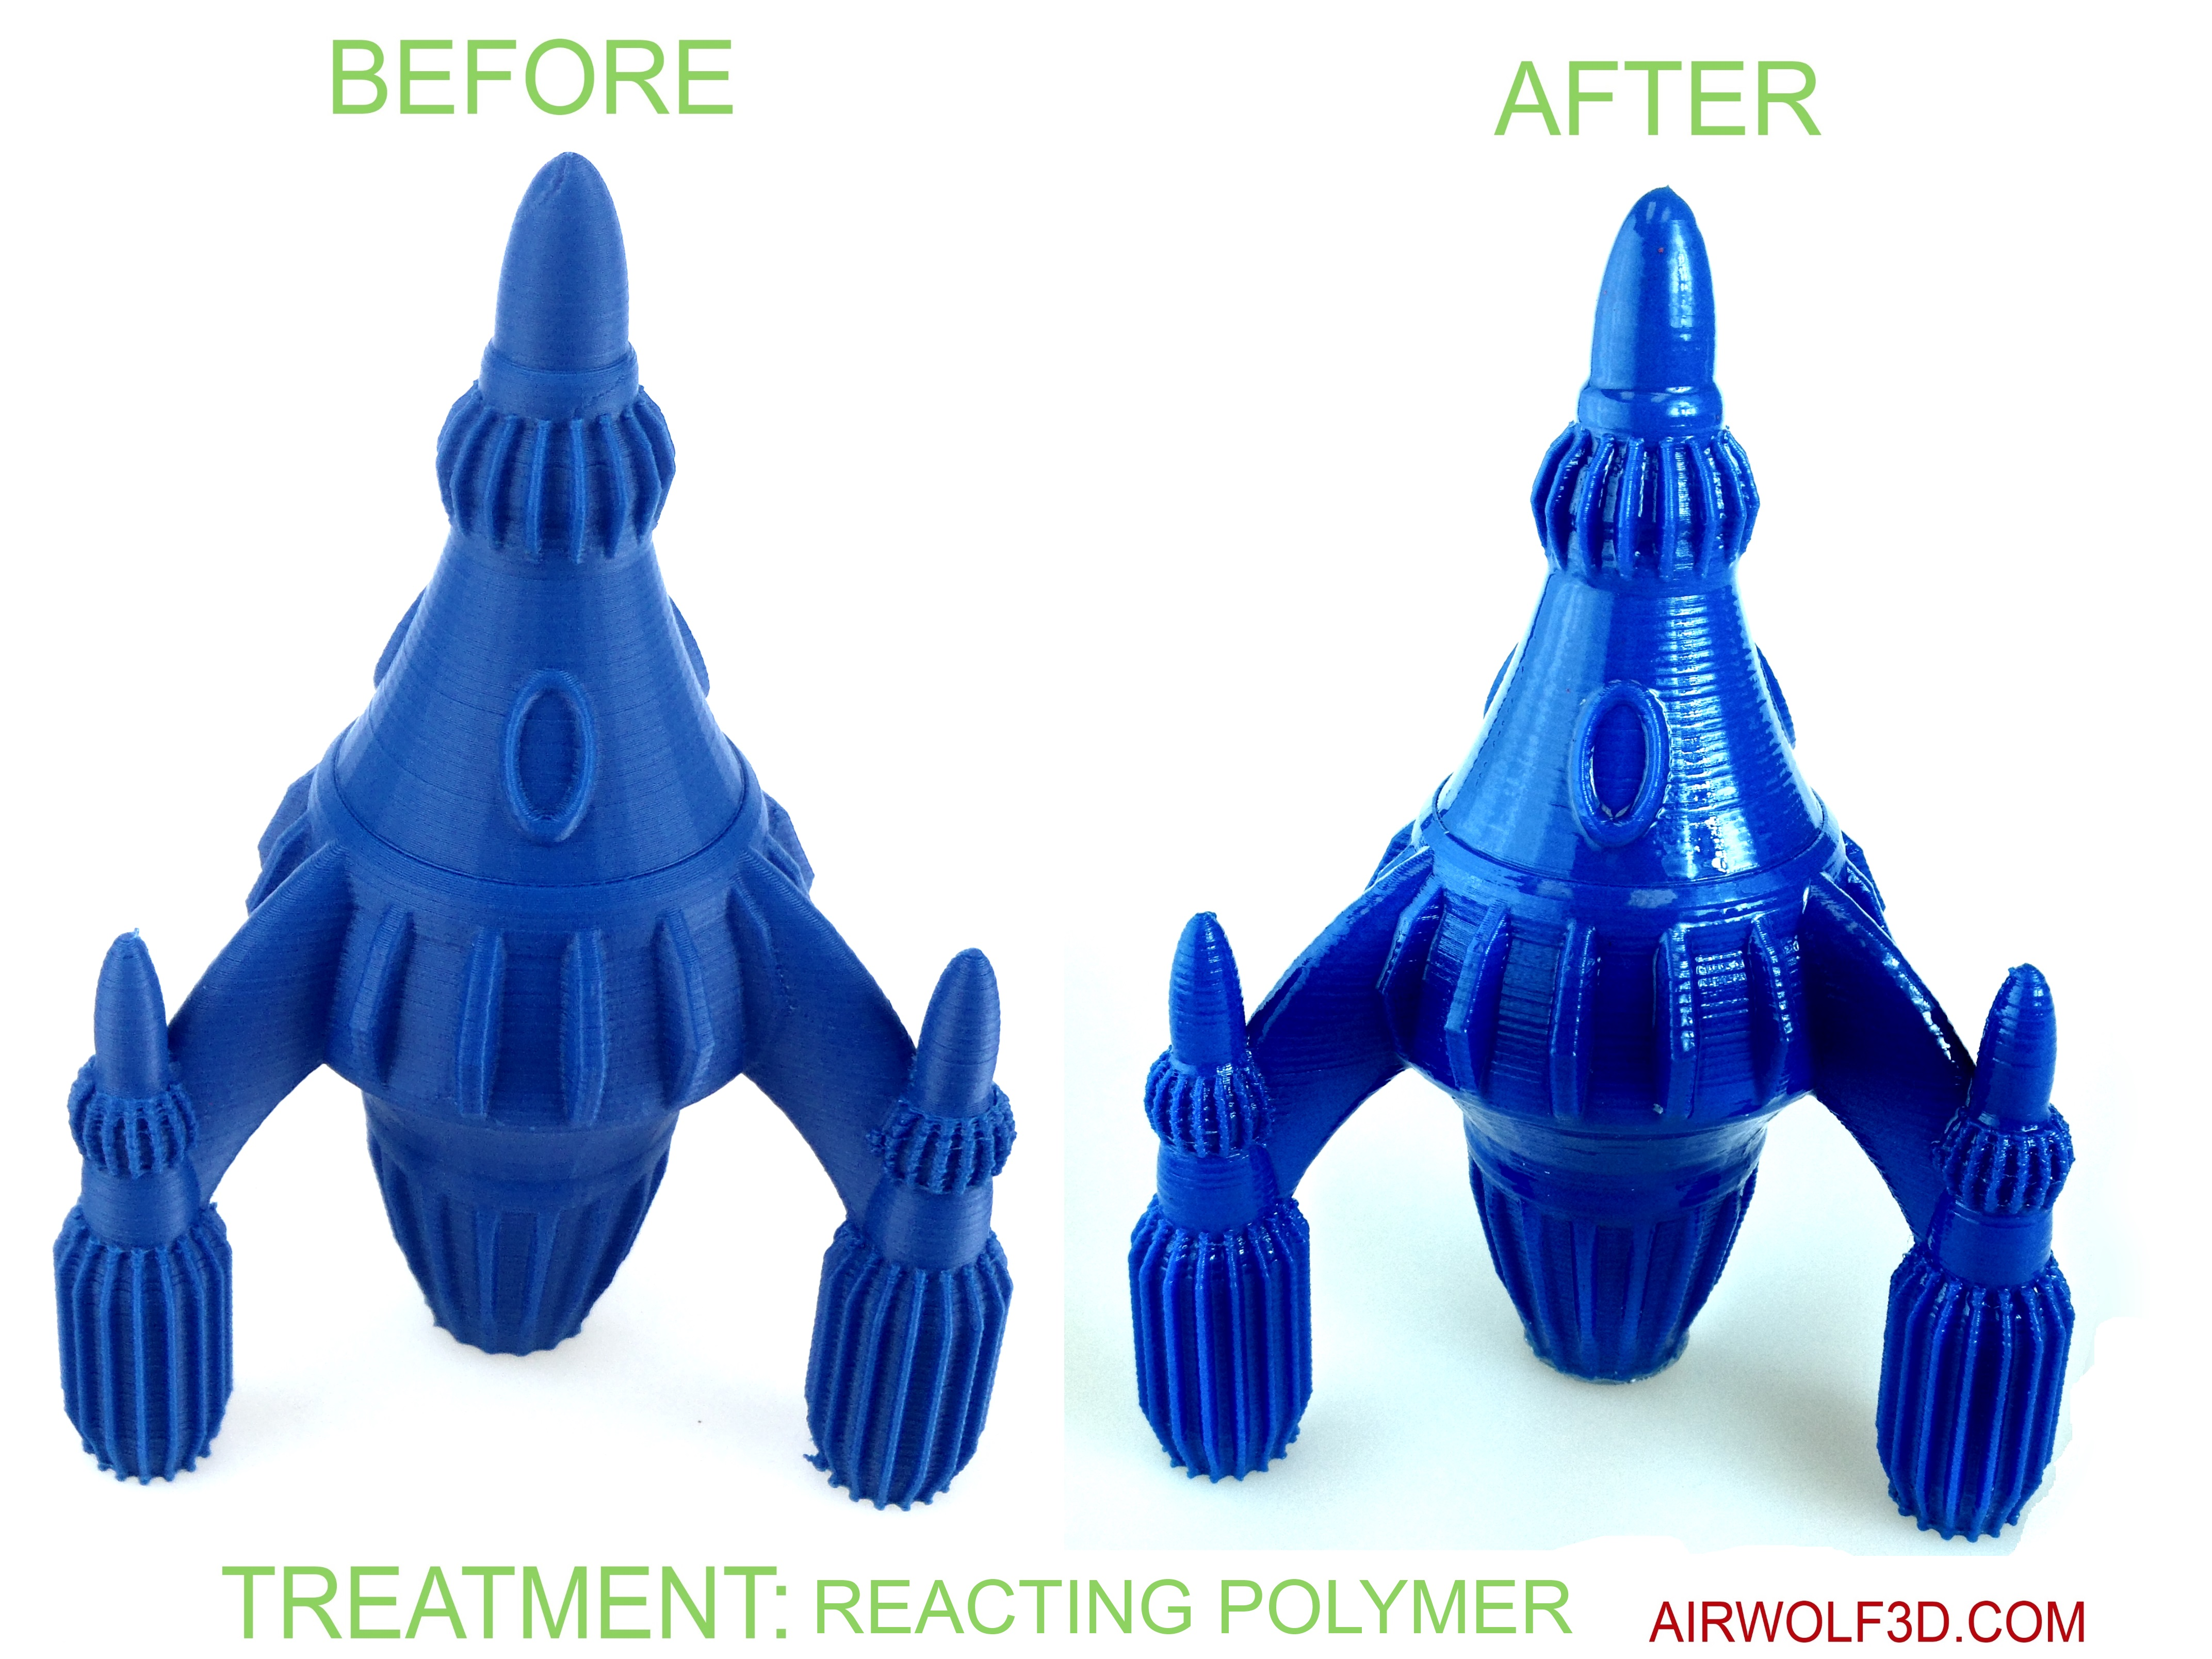 4 Steps to a Glossy ABS Part with Clear Reactive Polymer